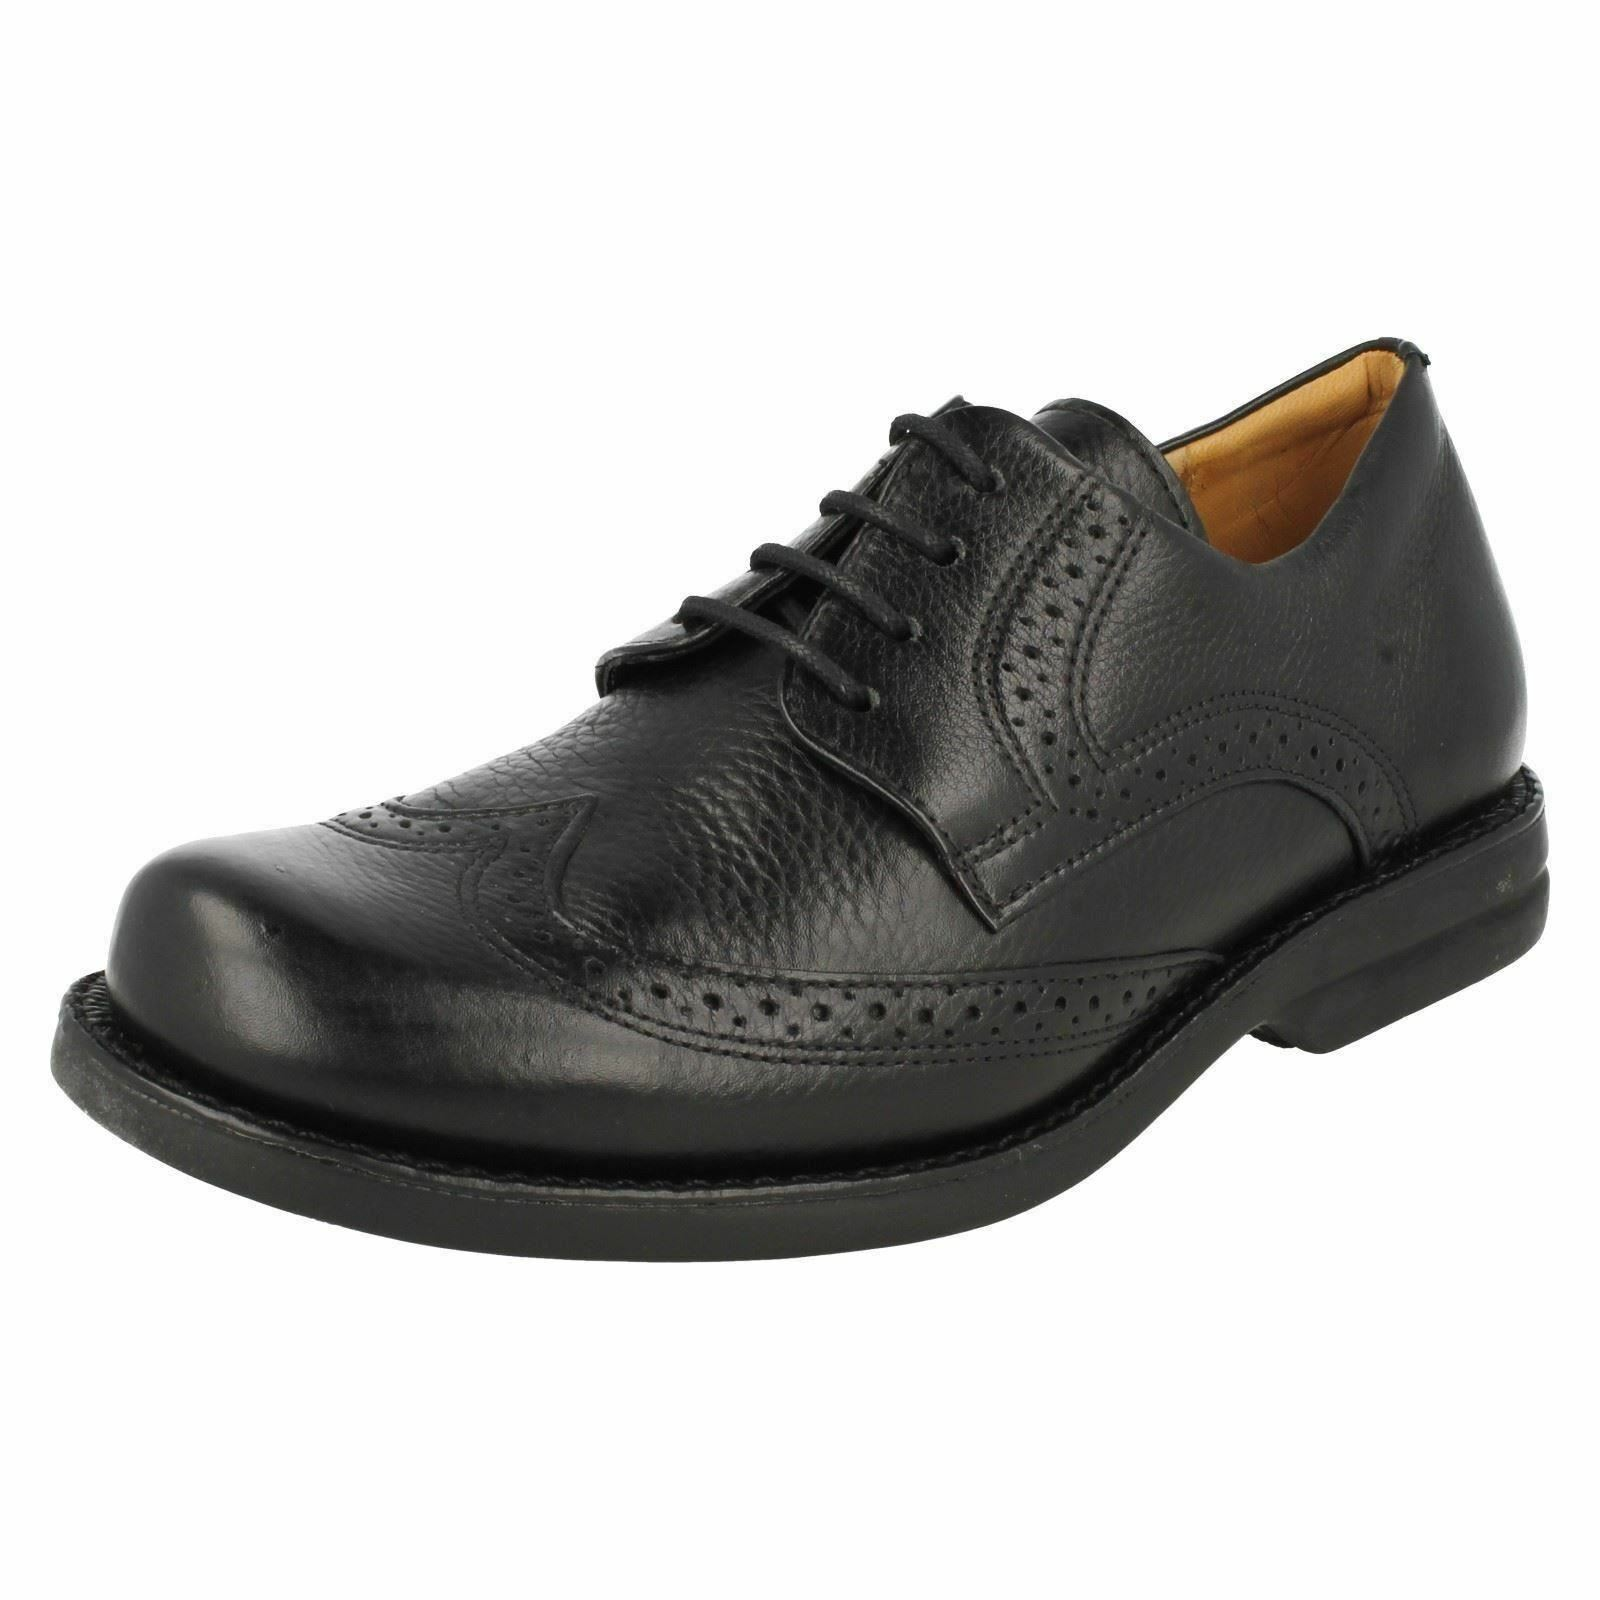 Mens Anatomic Black Leather Lace Up Brogue Shoes Palmas